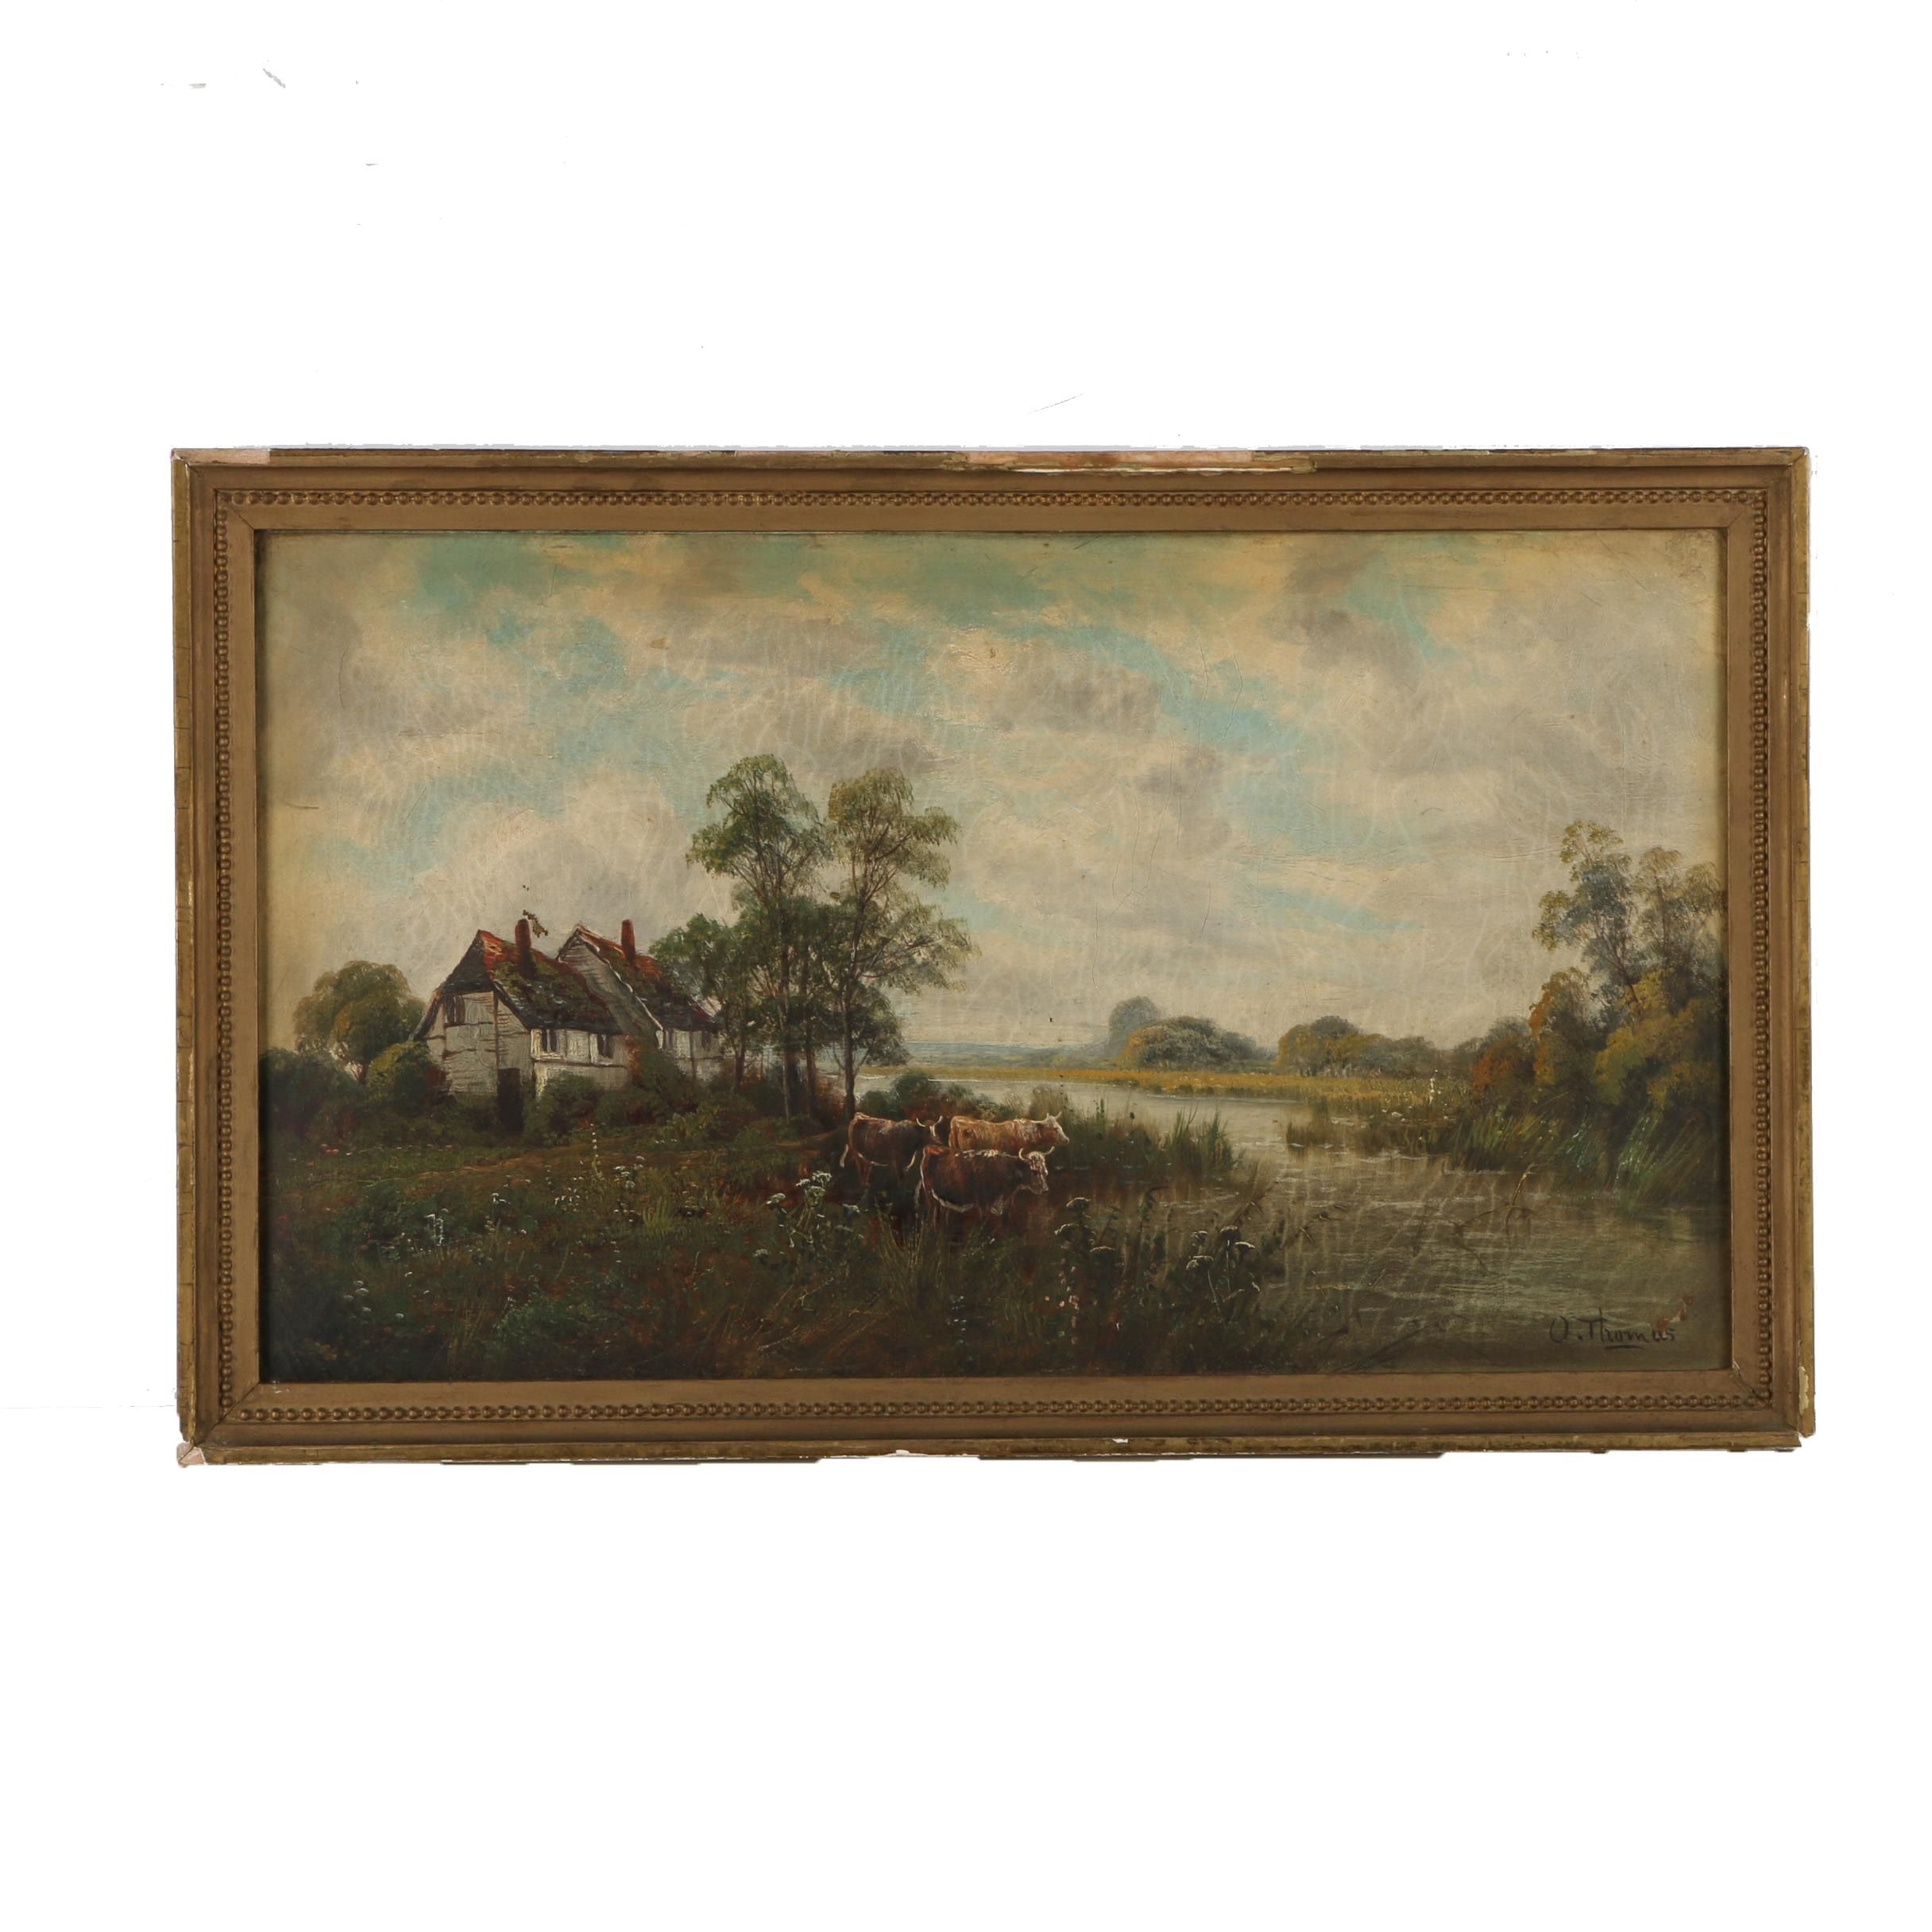 O. Thomas Oil Painting on Canvas Pastoral Landscape